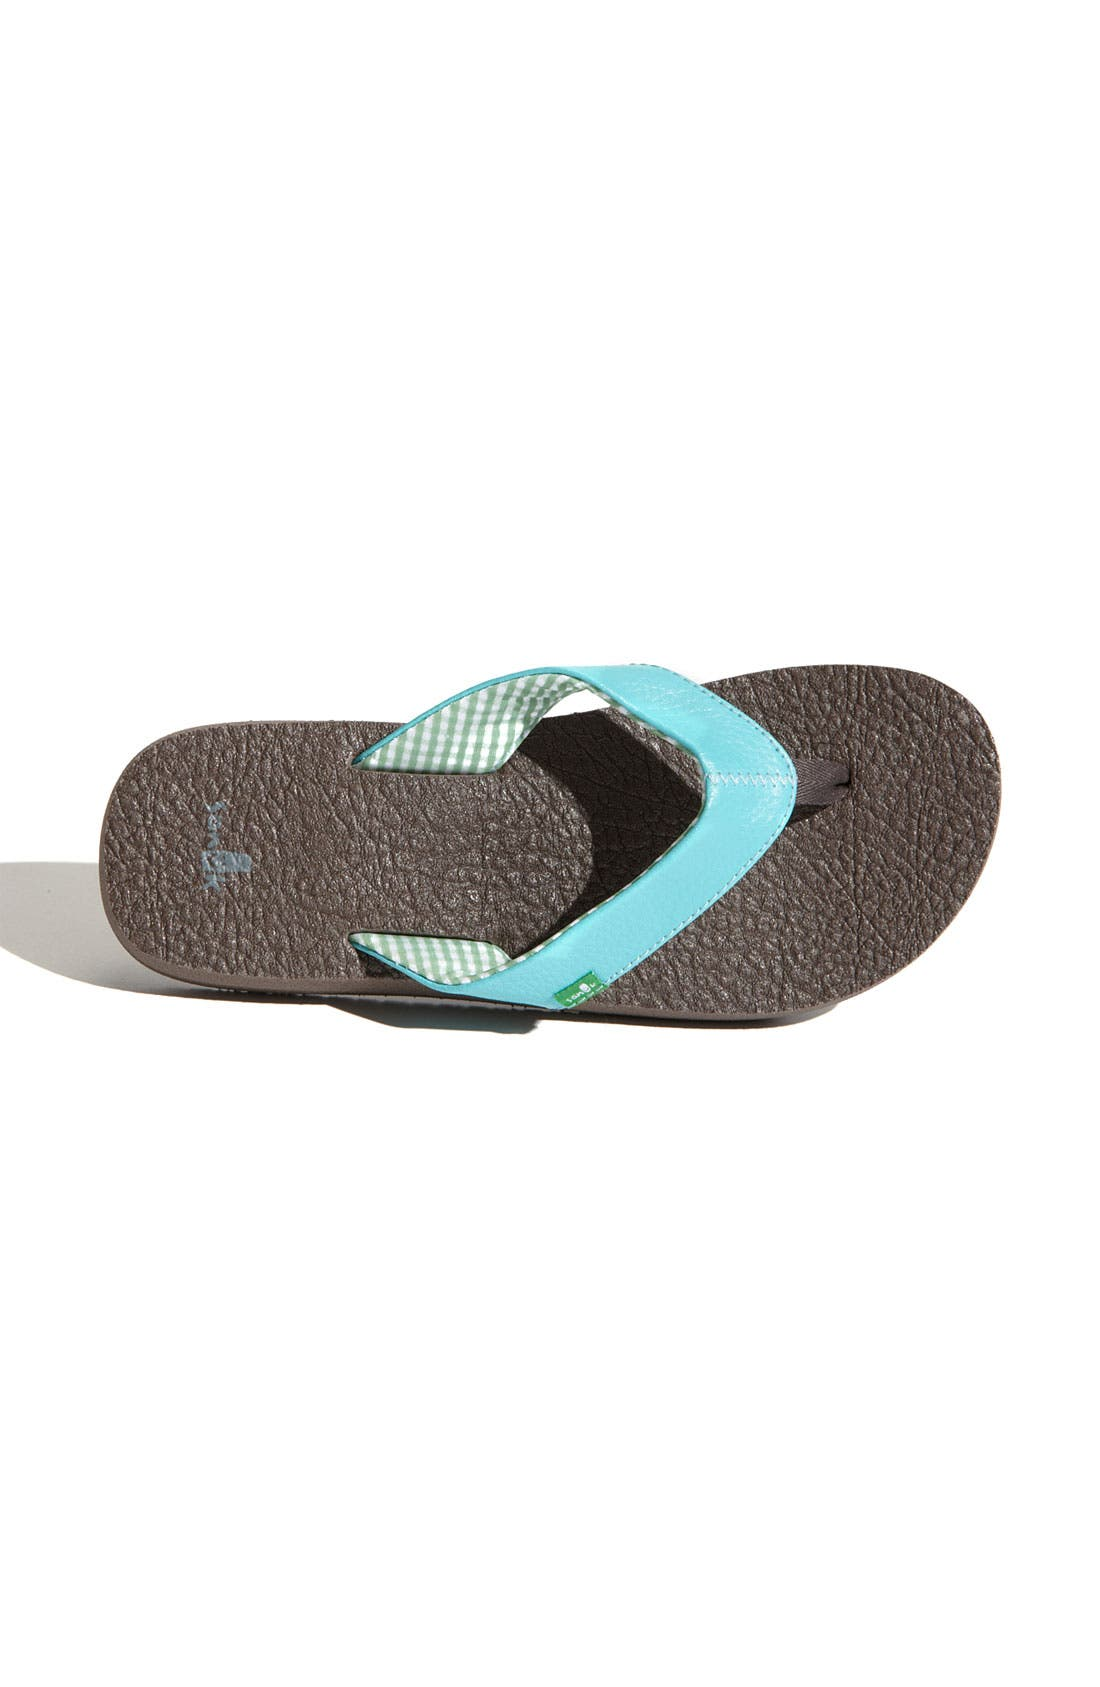 Alternate Image 3  - Sanuk 'Yoga Mat' Flip Flop (Women)